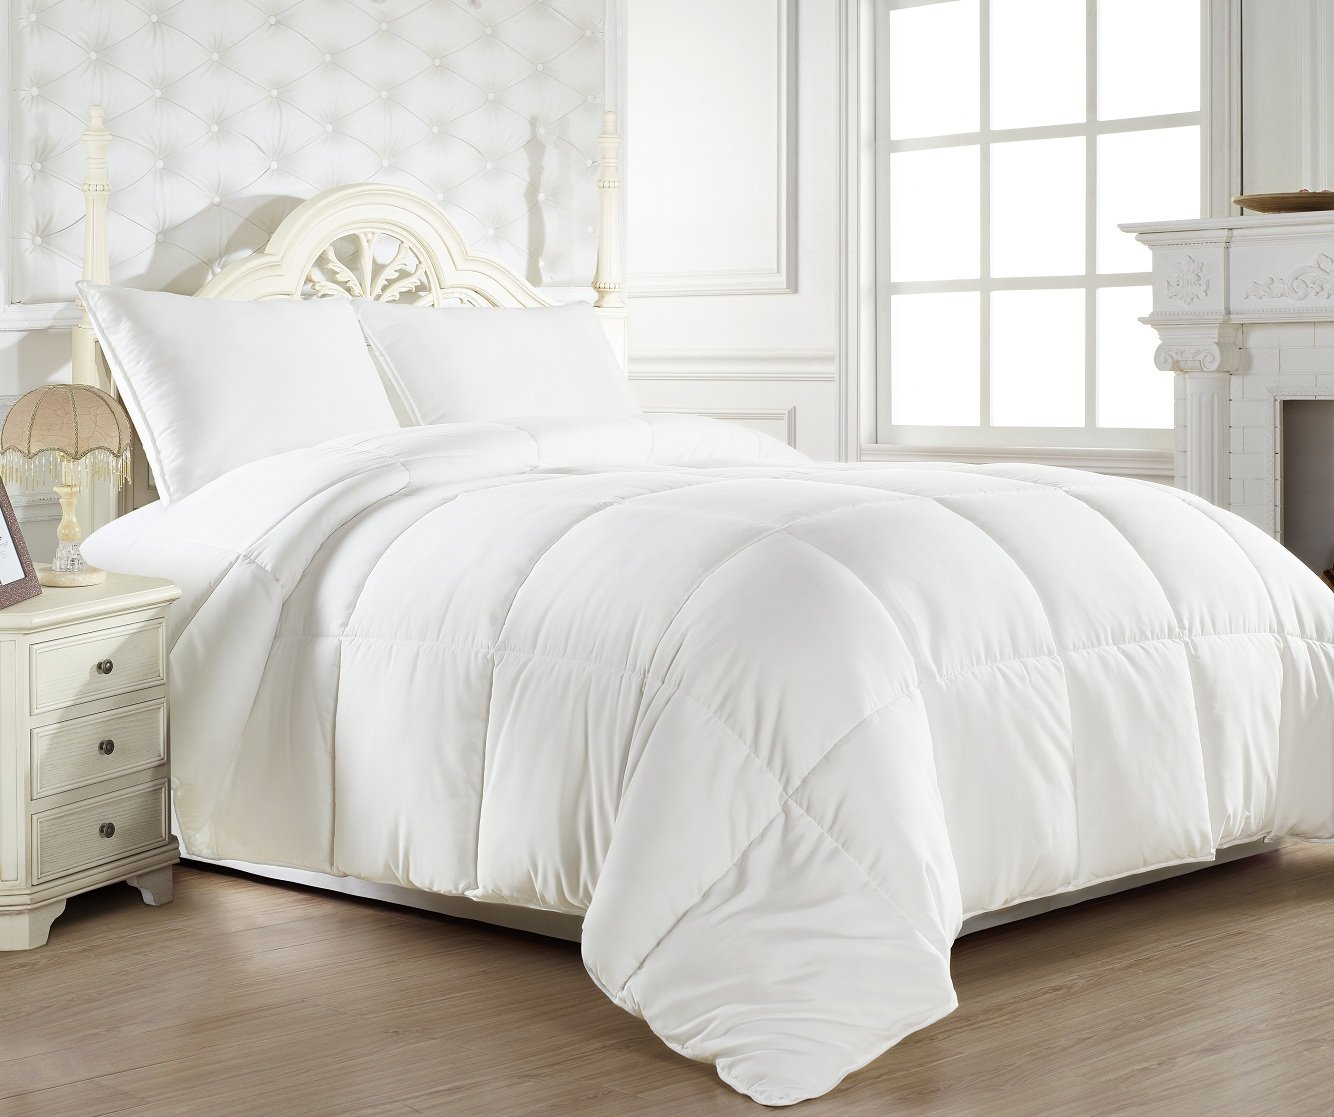 seasons heavy size chezmoi warm duvet target vs soft down the comforter covers ocean feather collection insert set duvets xl how polo blanket cover king goose super flannel on summer alternative full best of concierge comforters gray twin white cheap lightweight comfy fluffy to